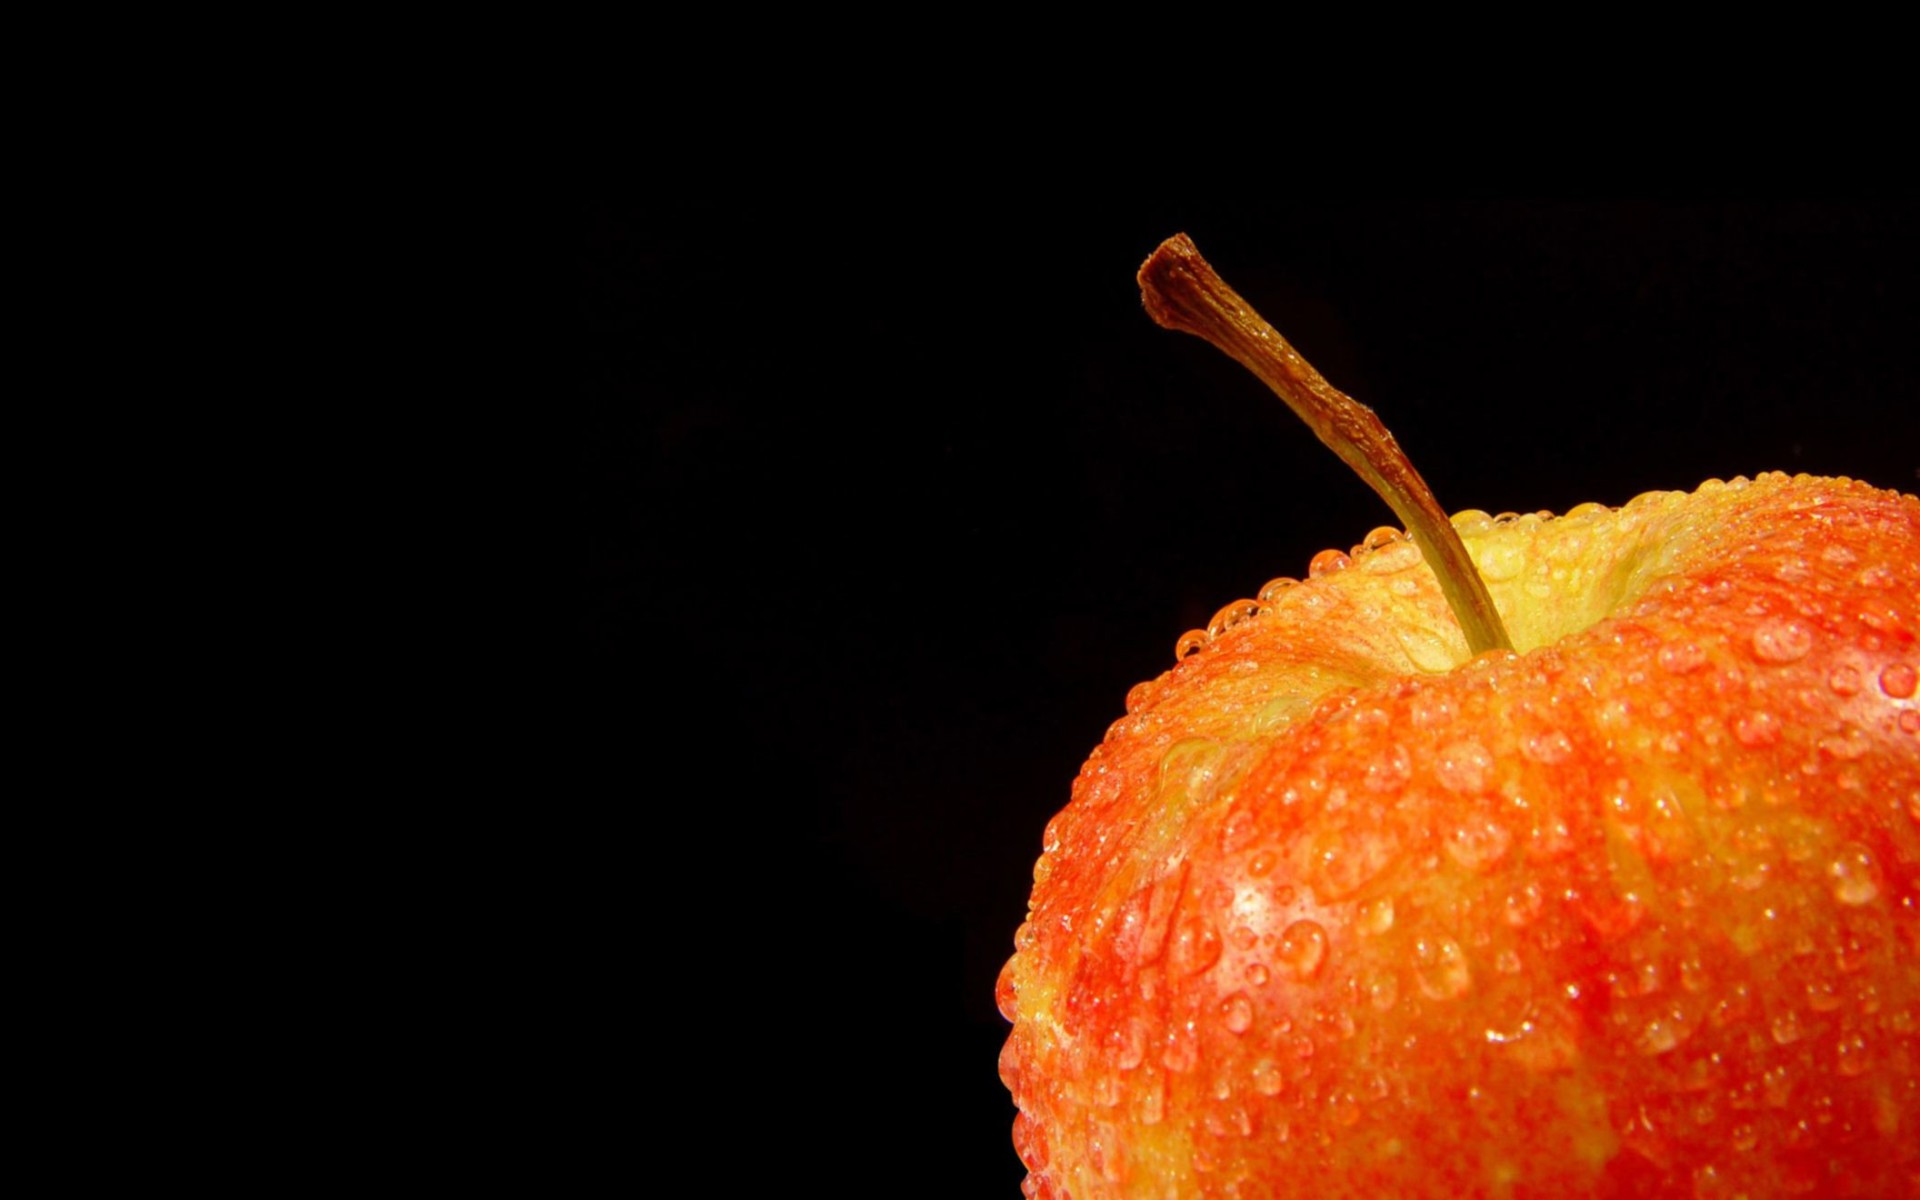 Fresh Fruit Apple Black Background for Desktop Wallpaper